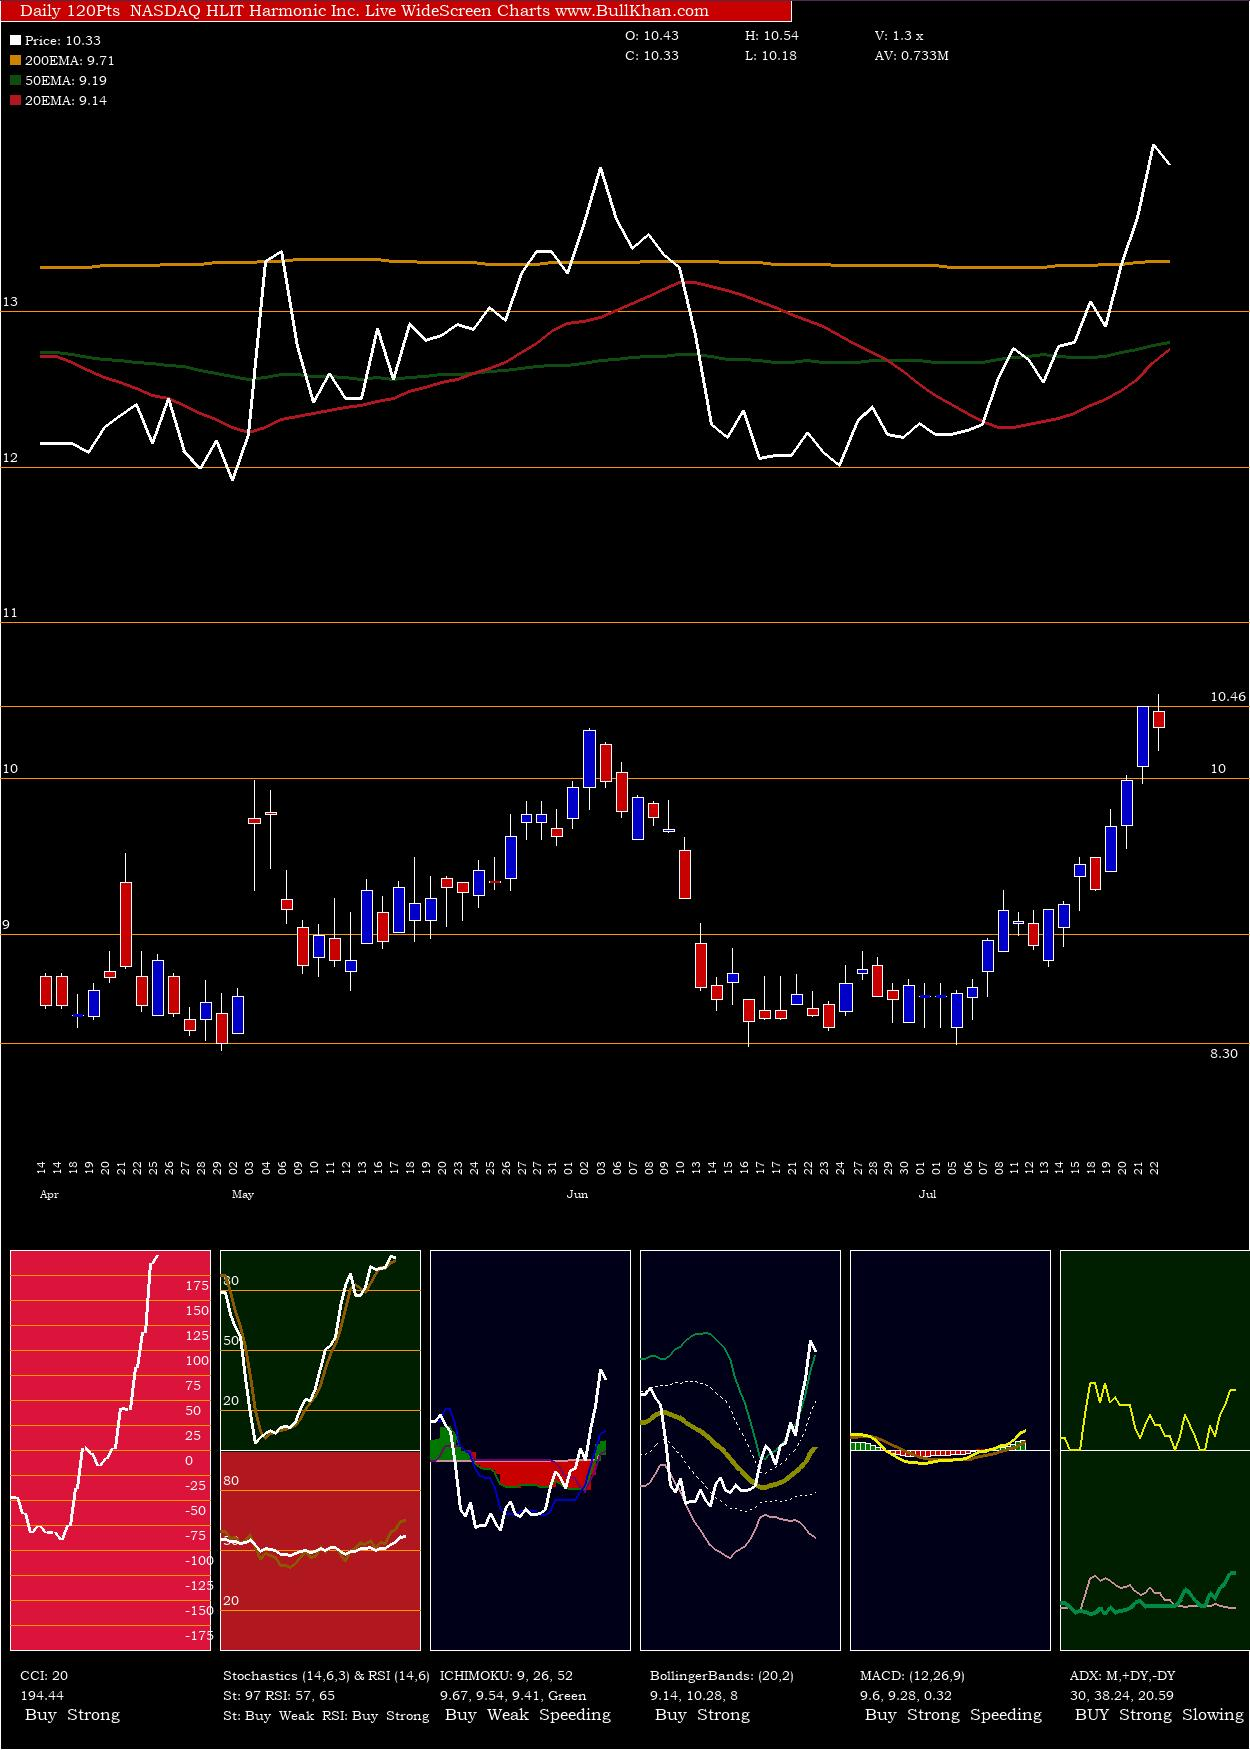 Harmonic Inc. charts and indicators